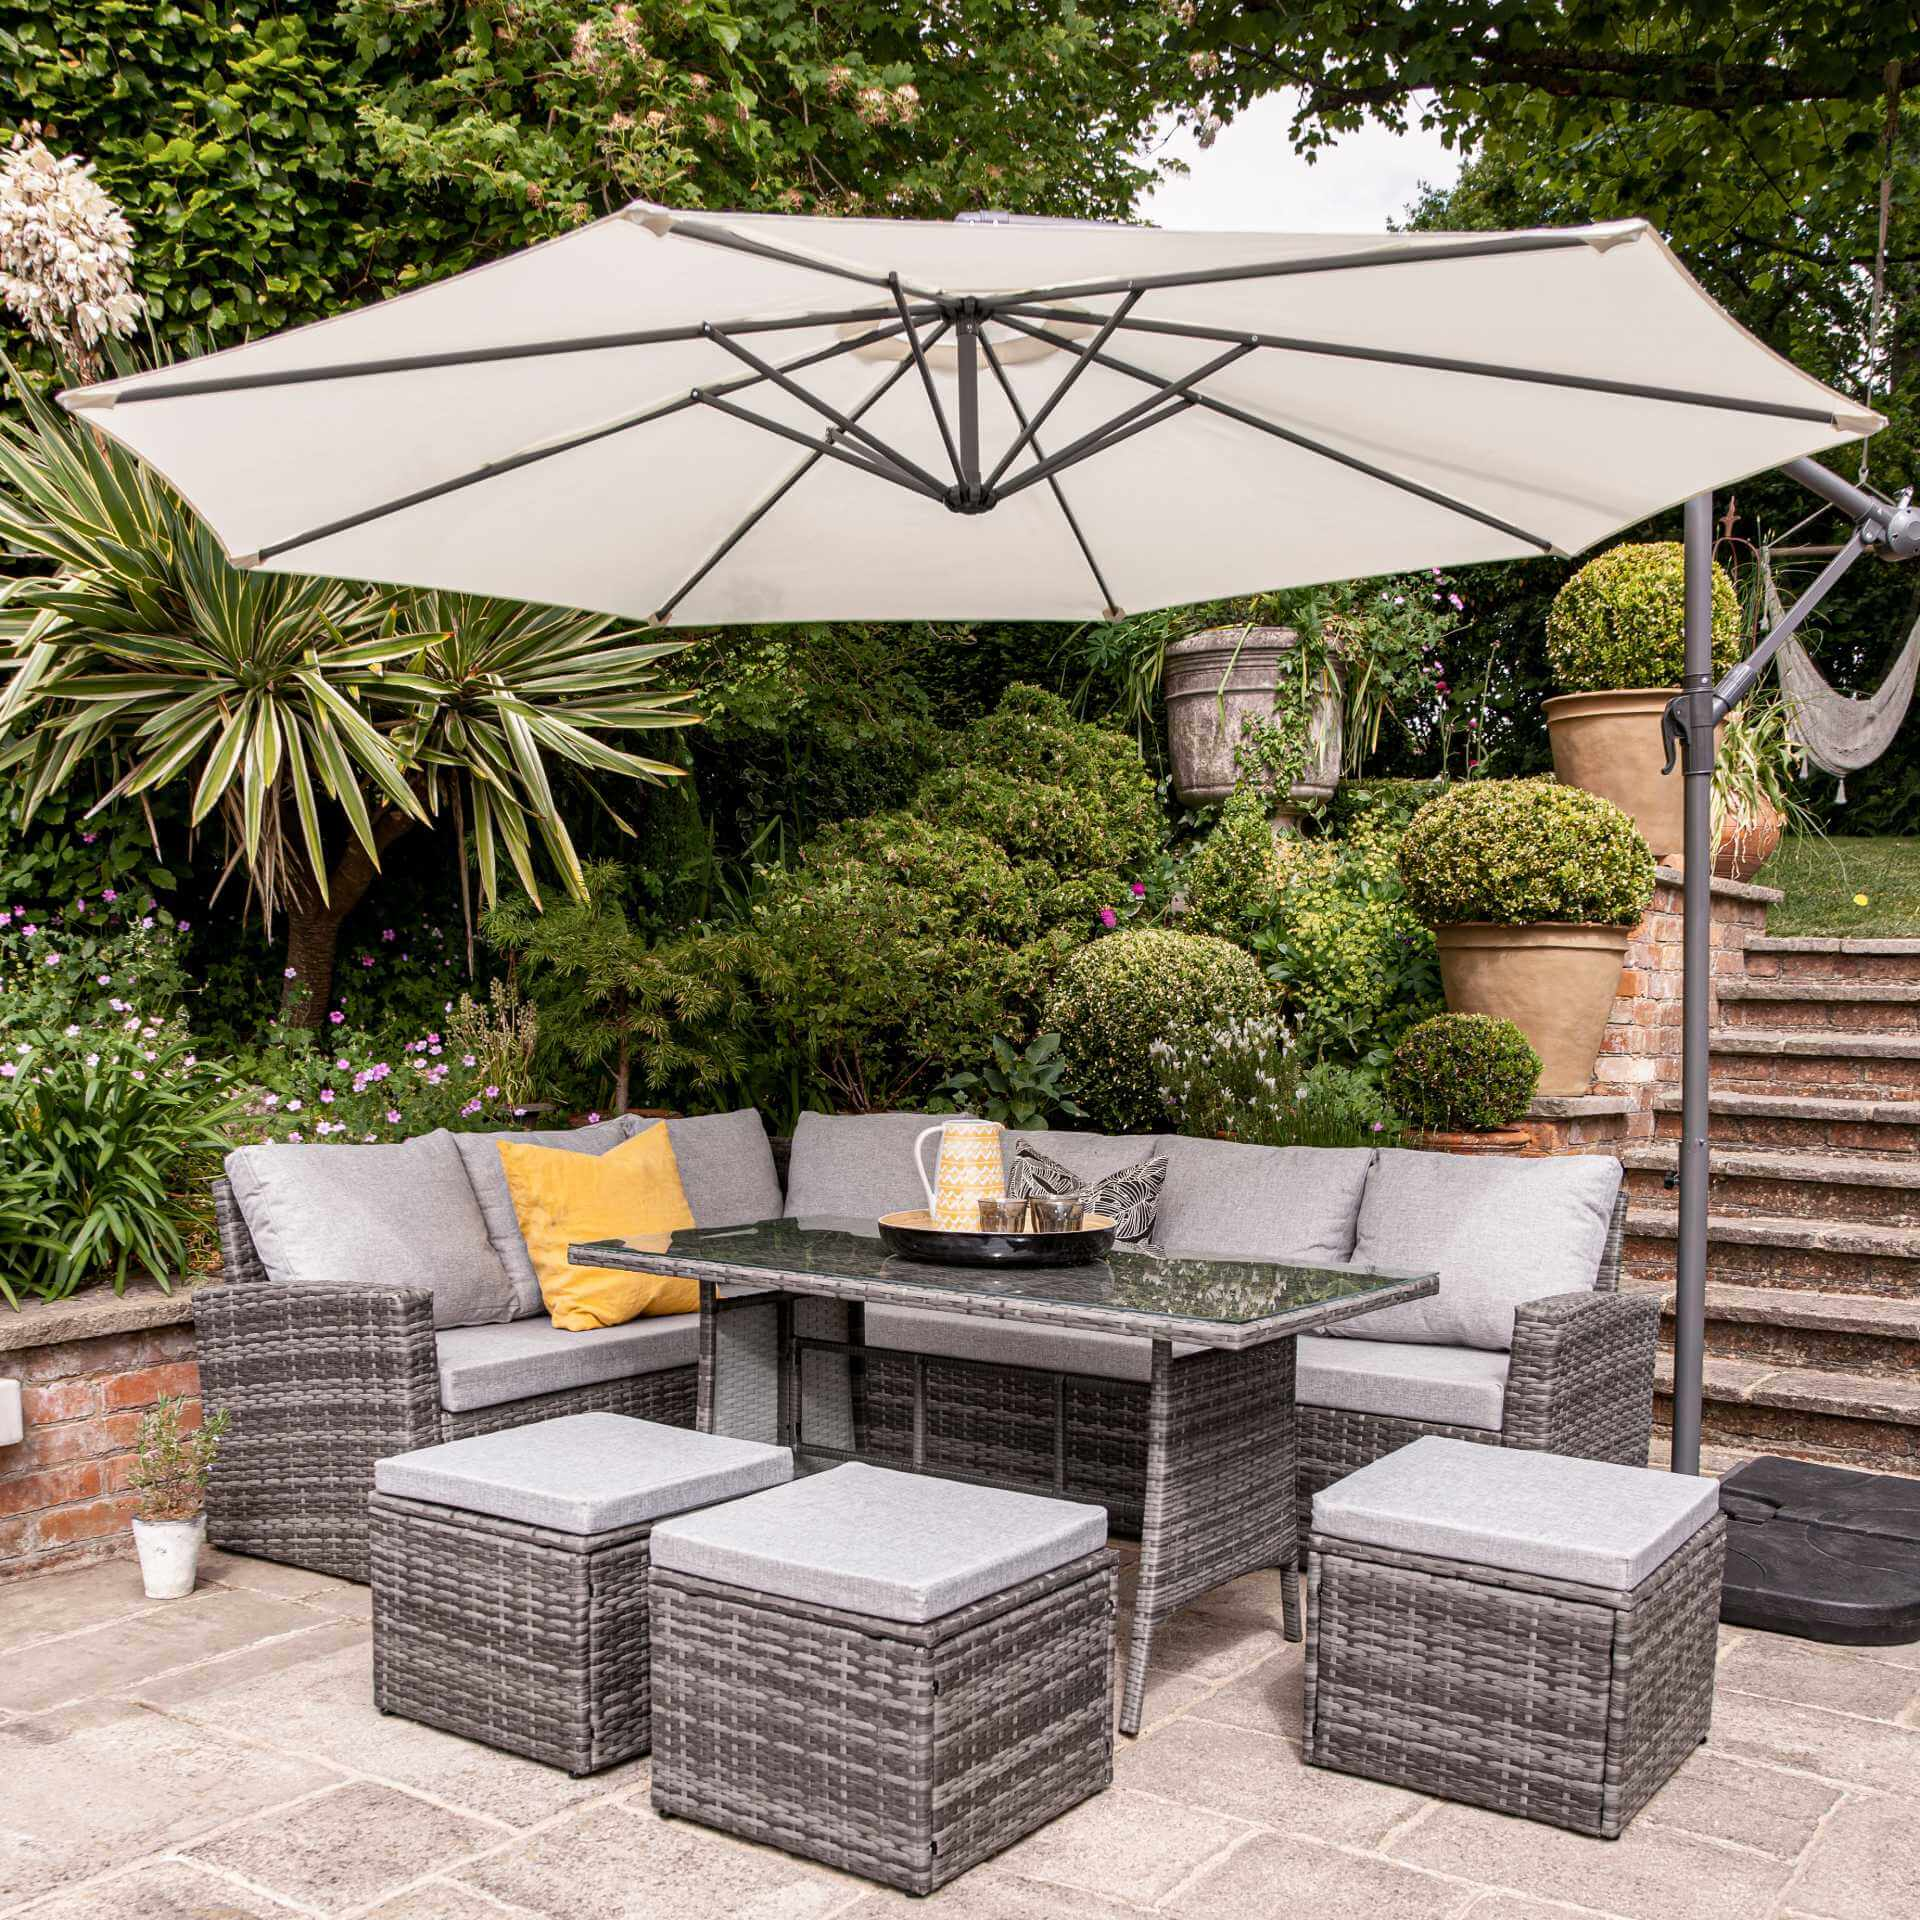 9 Seater Rattan Outdoor Corner Sofa Set with Lean Over Parasol and Base - Grey Weave - Laura James